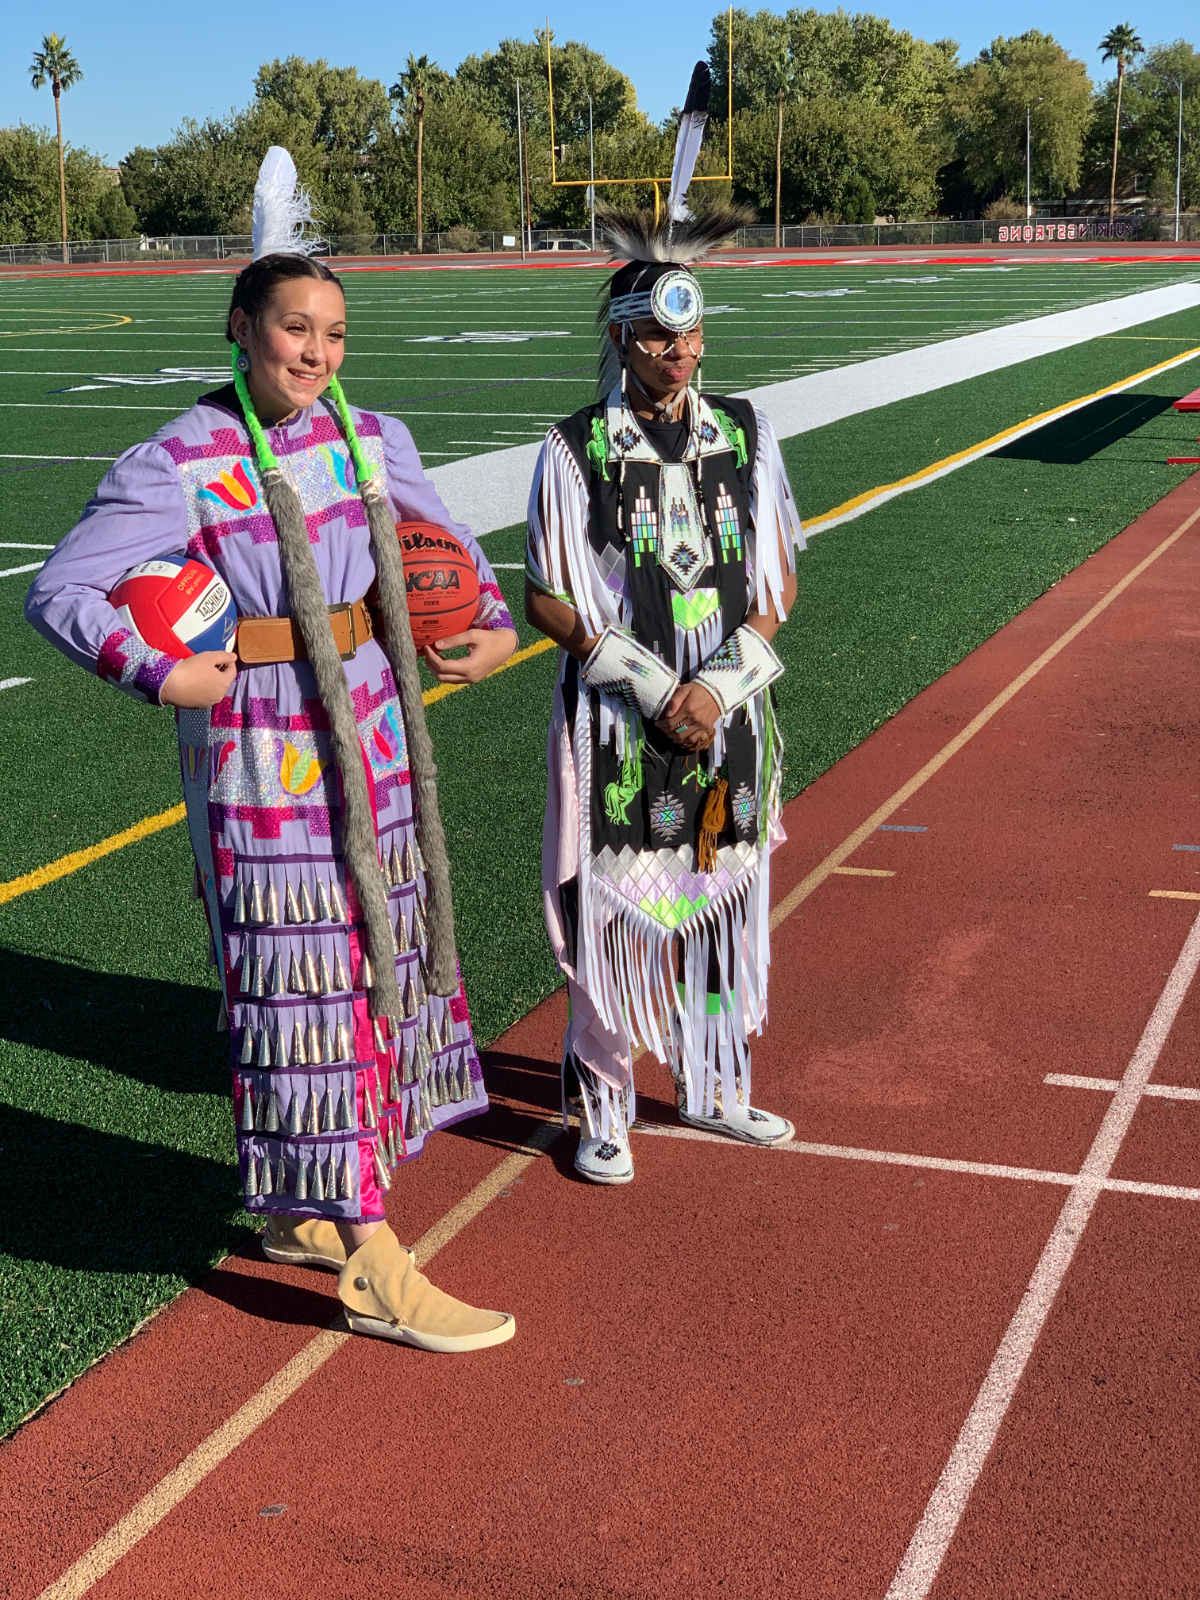 Native America Heritage Shines through Valley Student-Athletes